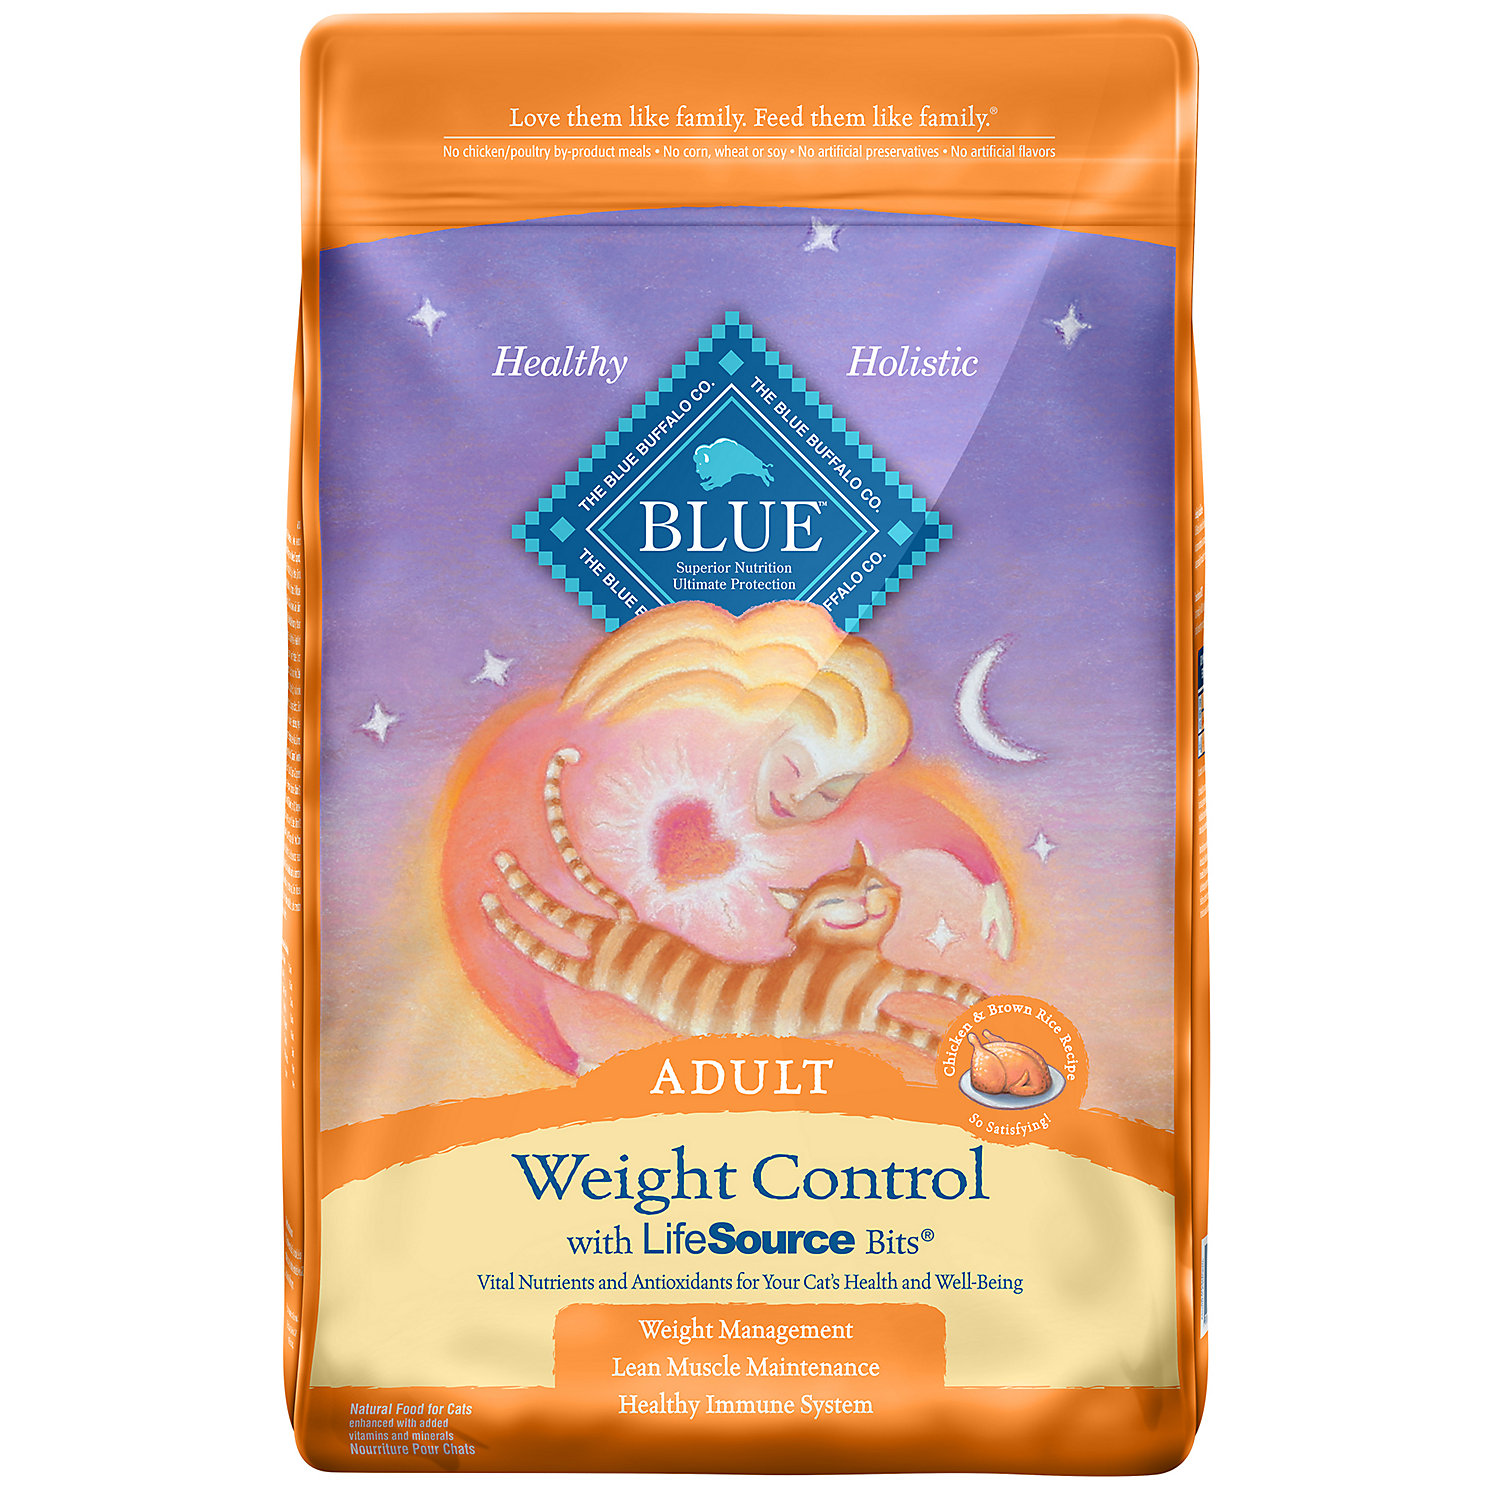 Blue Buffalo Weight Control Chicken Brown Rice Adult Cat Food 15 Lbs.